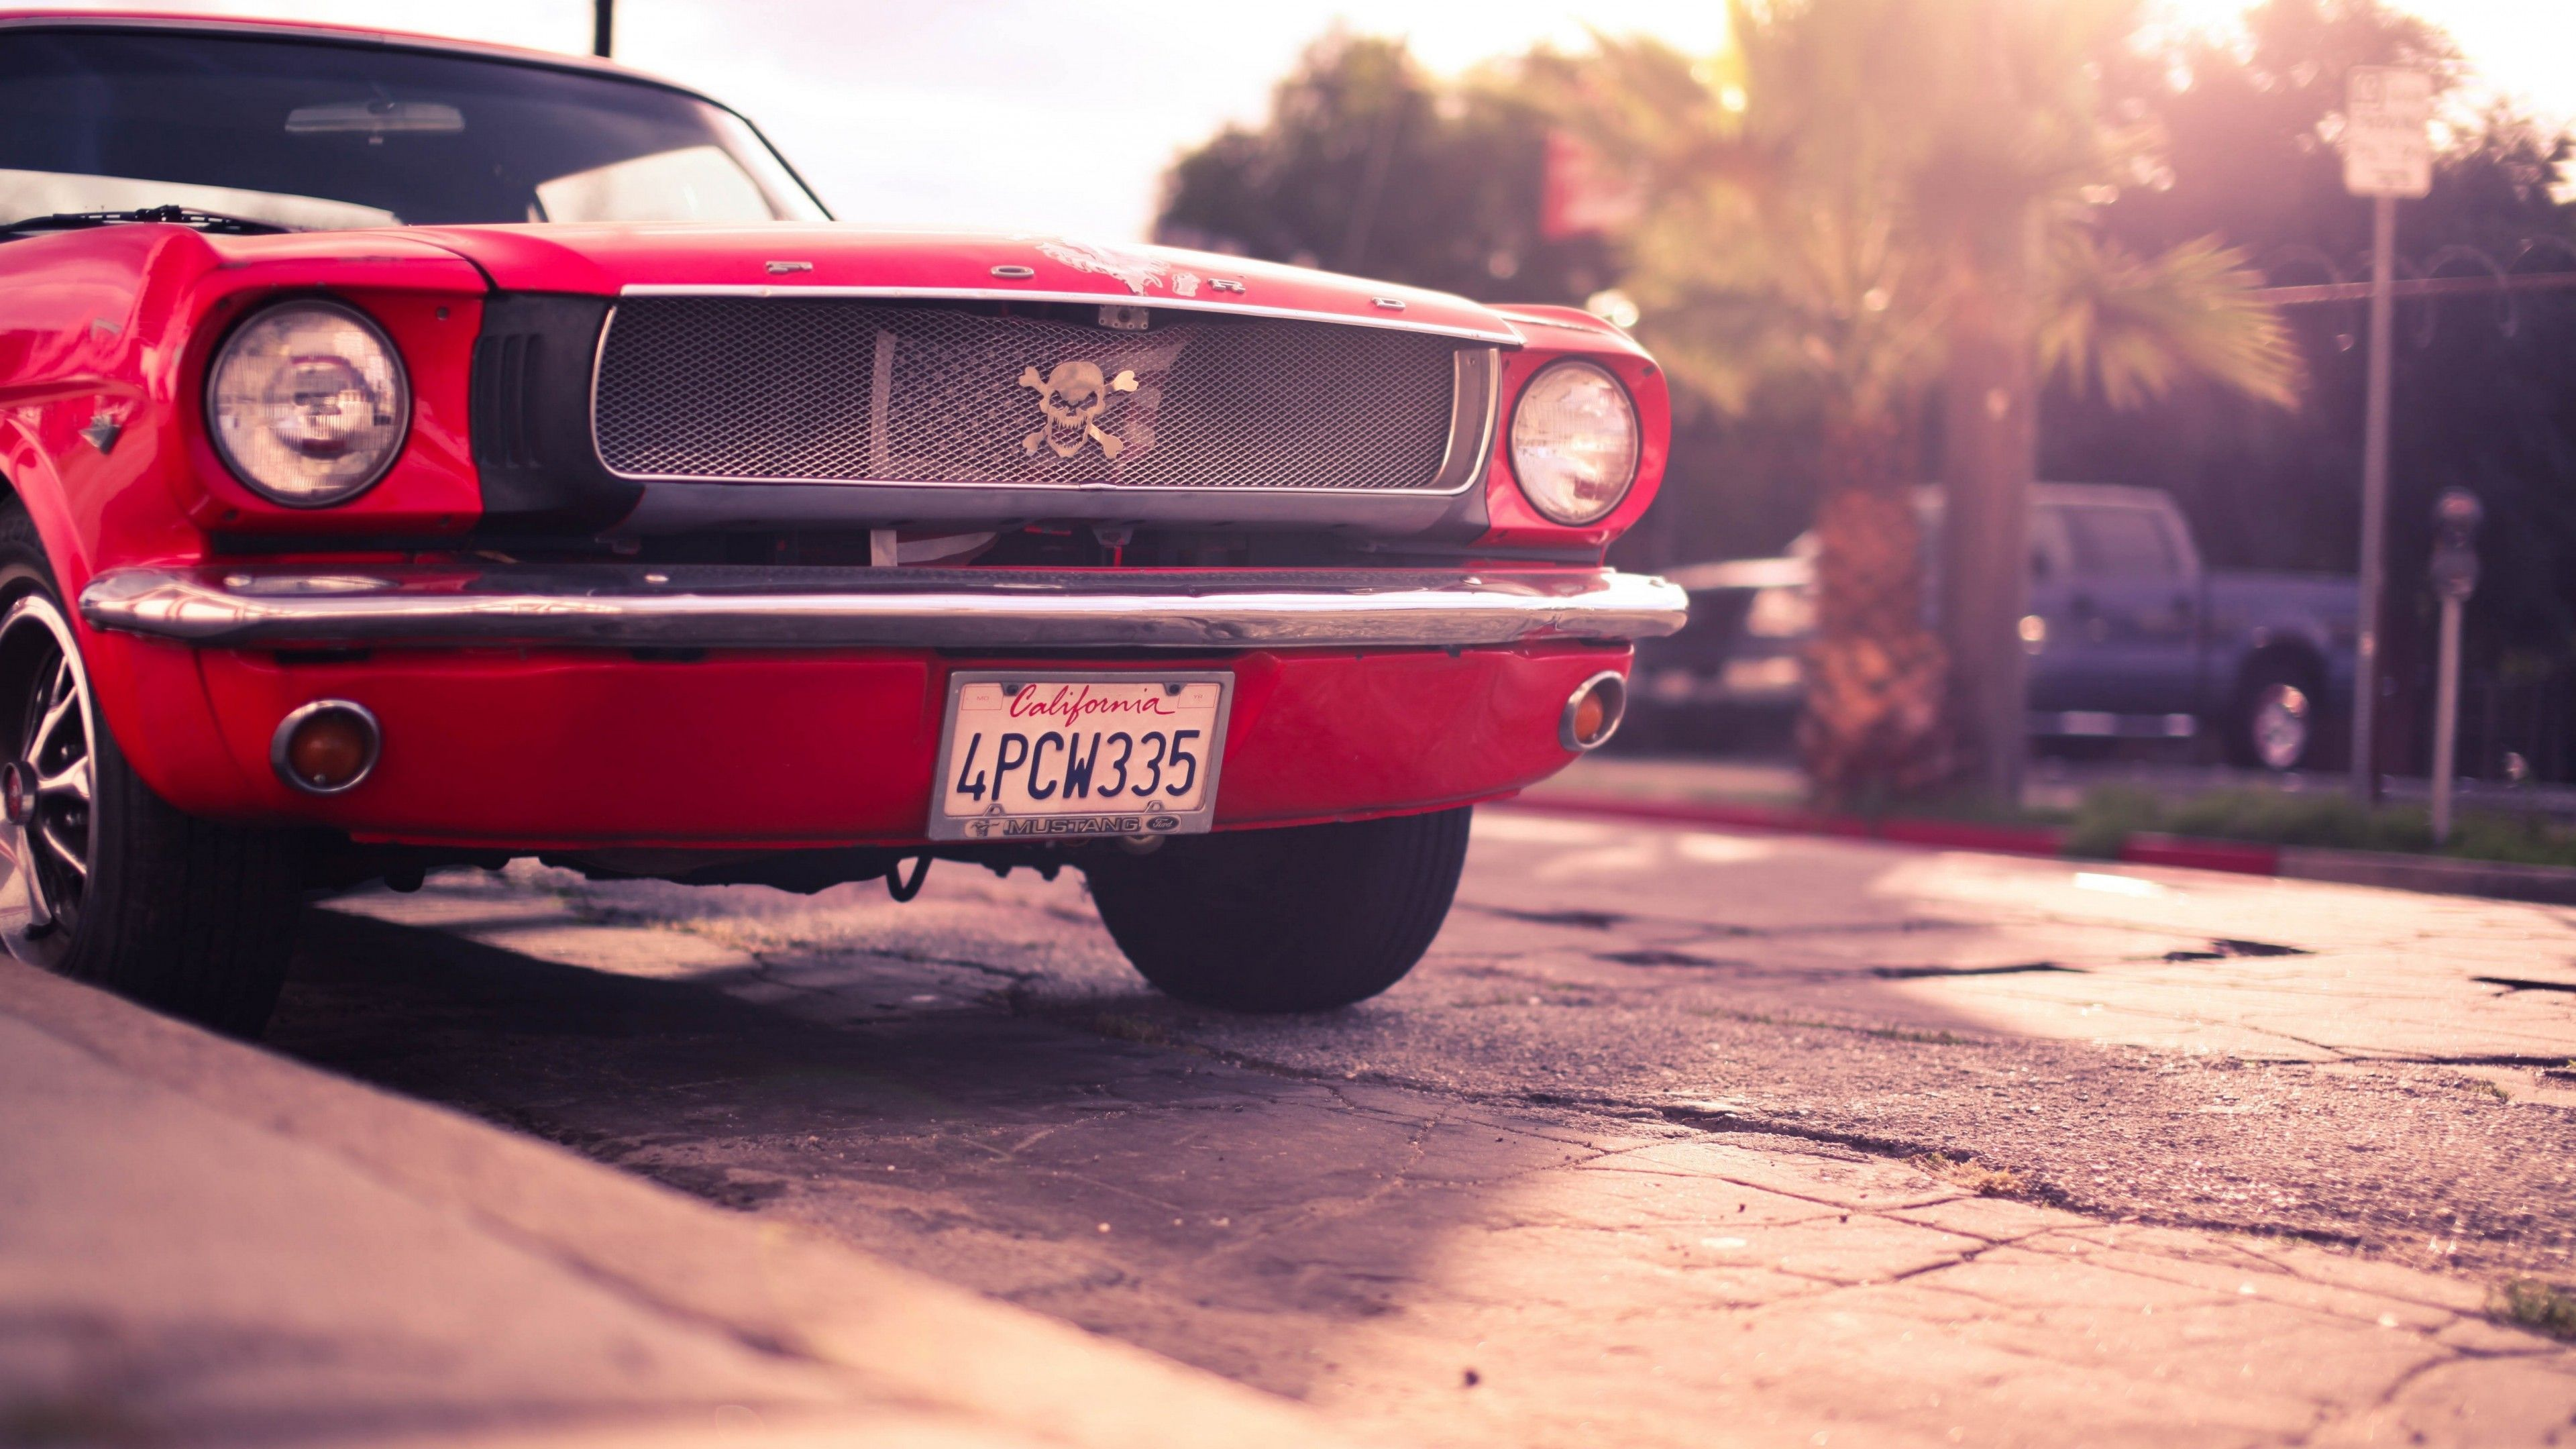 Classic Cars Hd Wallpapers 4k: Ford Mustang Classic Red 4K Wallpaper #ford #mustang